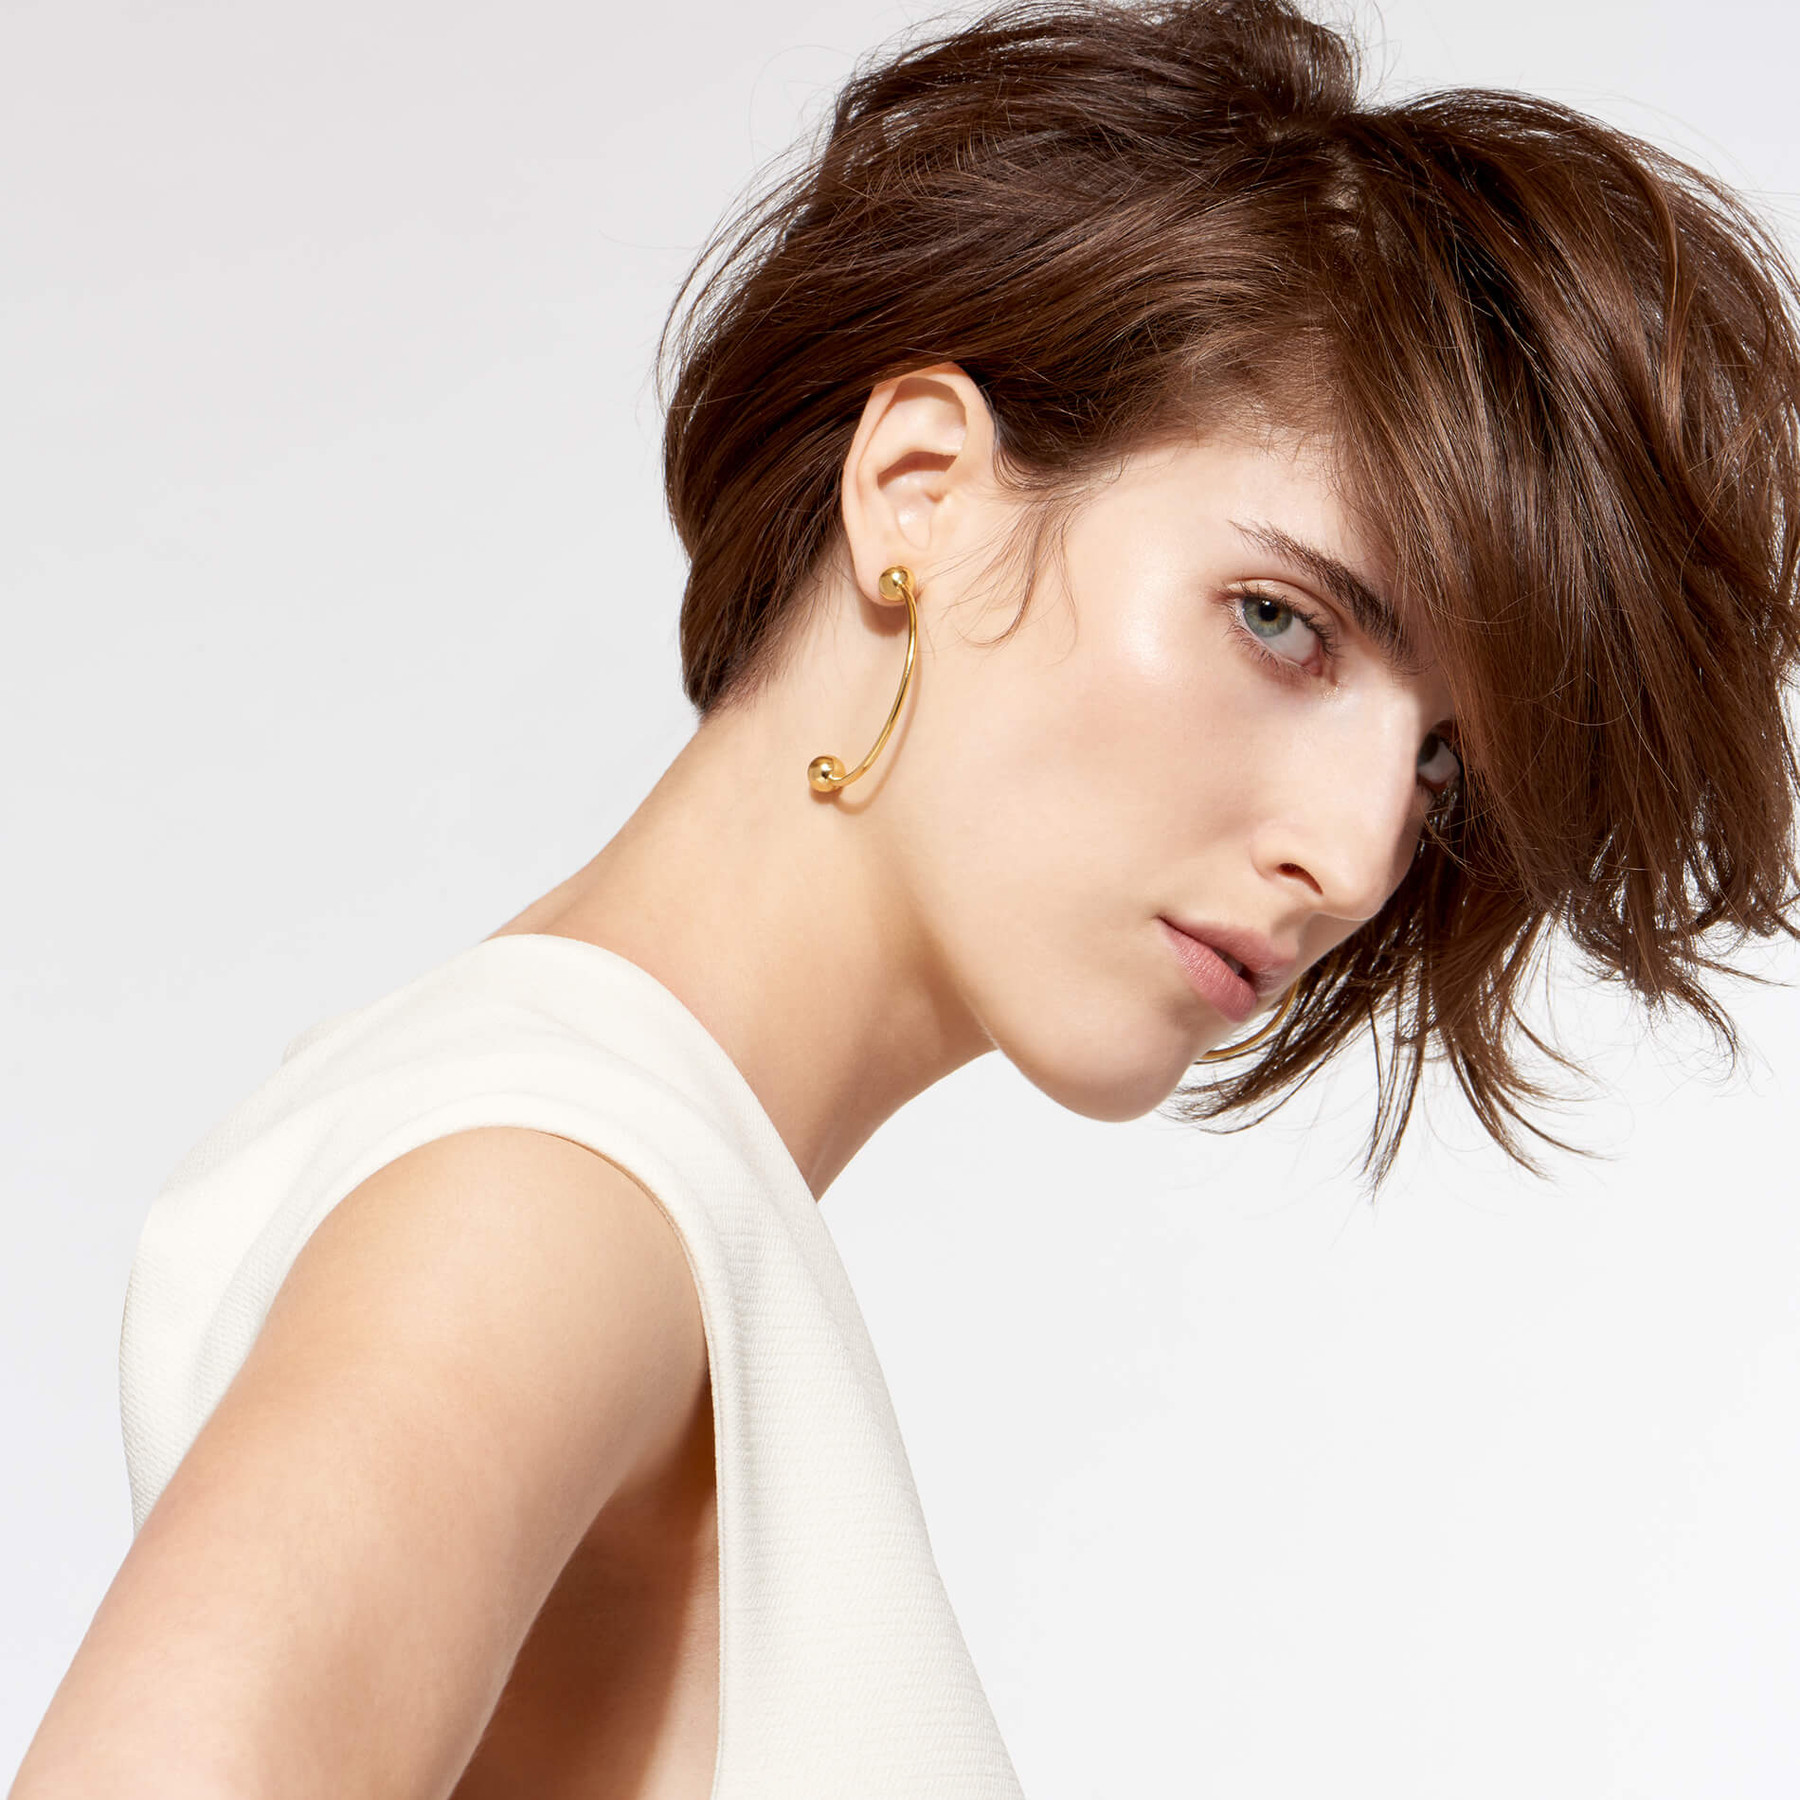 glimmering 22 karat gold curved earrings with globes on stunning white woman